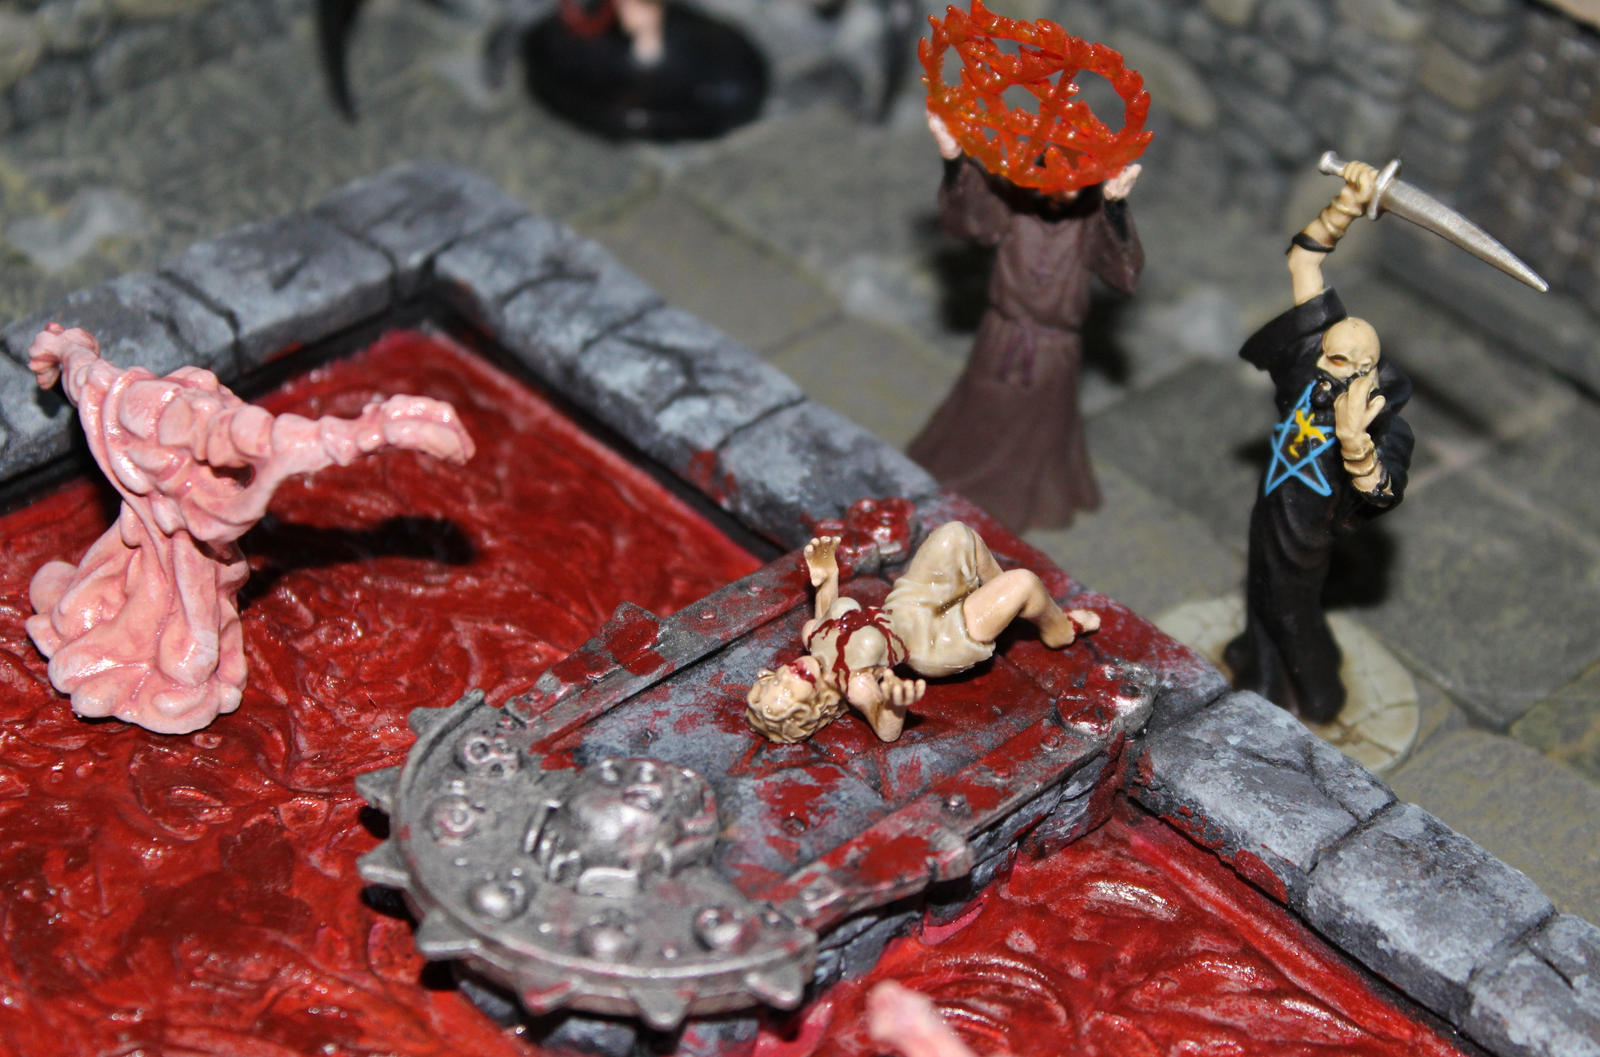 Bloody sacrifice for Asmodeus 2 by MrVergee